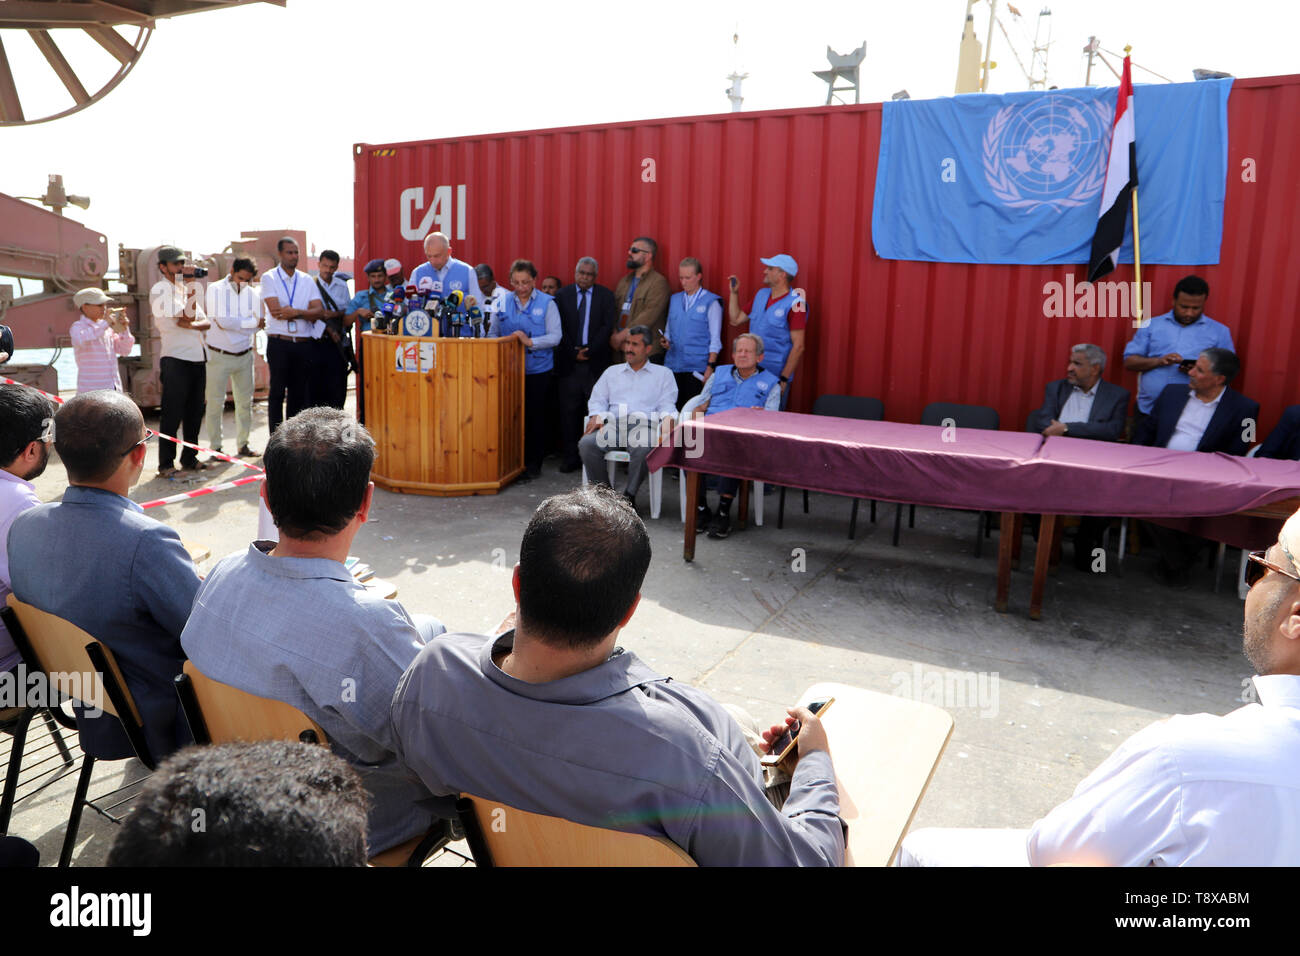 (190515) --  HODEIDAH, May 15, 2019 (Xinhua) -- The Redeployment Coordination Committee holds a press conference at the Hodeidah port in Hodeidah, Yemen, on May 14, 2019. The UN monitoring mission in Yemen on Tuesday welcomed the Houthi rebels' handover of the security of Hodeidah ports to the coast guards. (Xinhua) - Stock Image